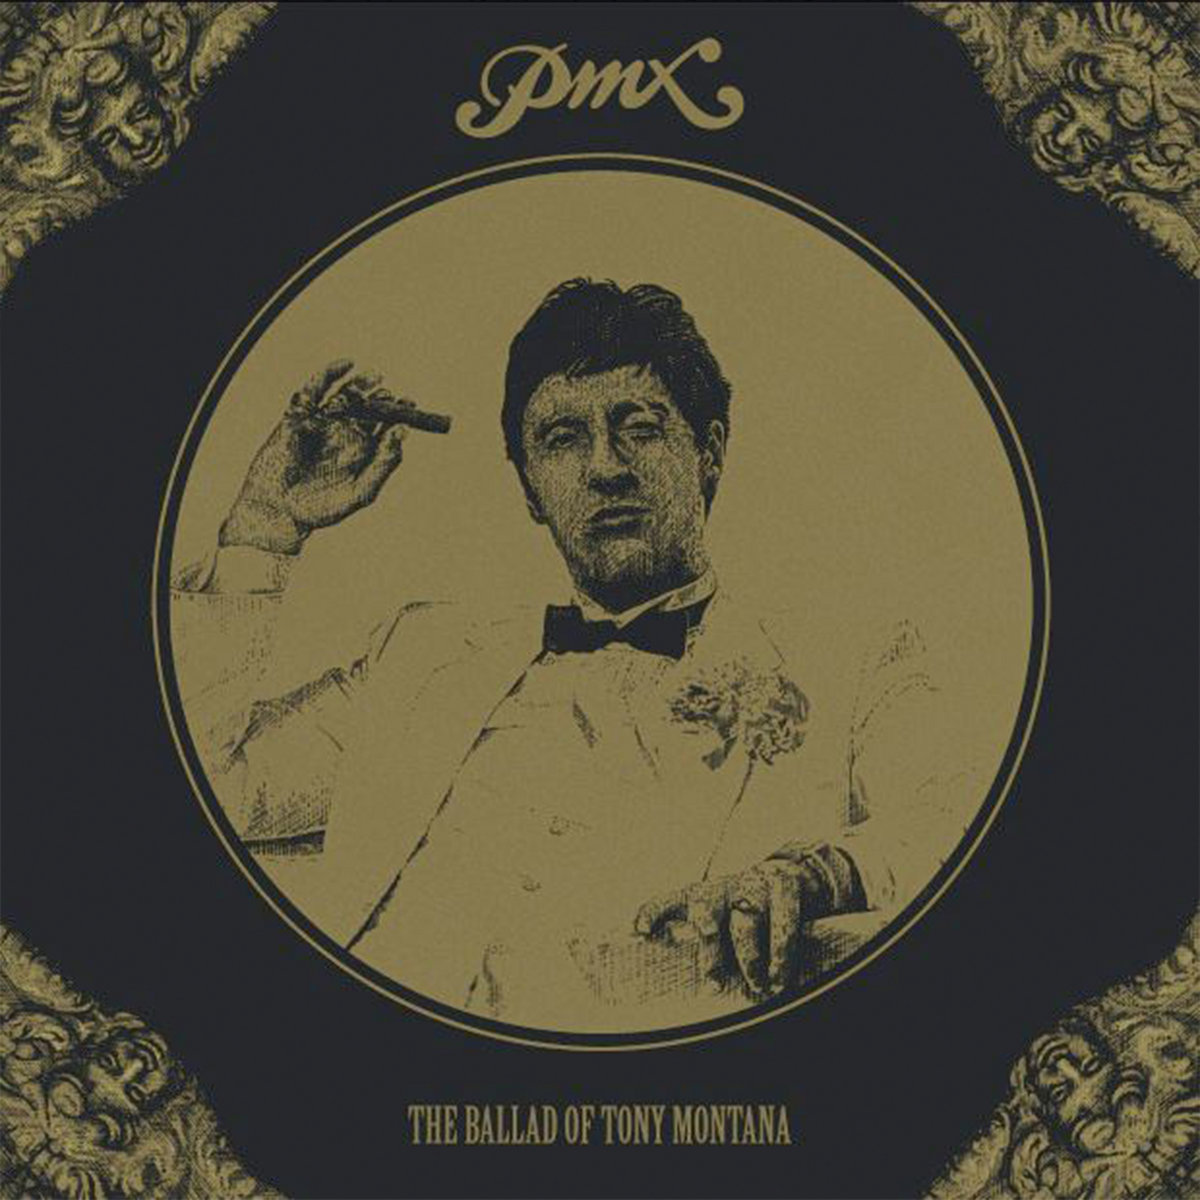 Pmx - The Ballad of Tony Montana cover art